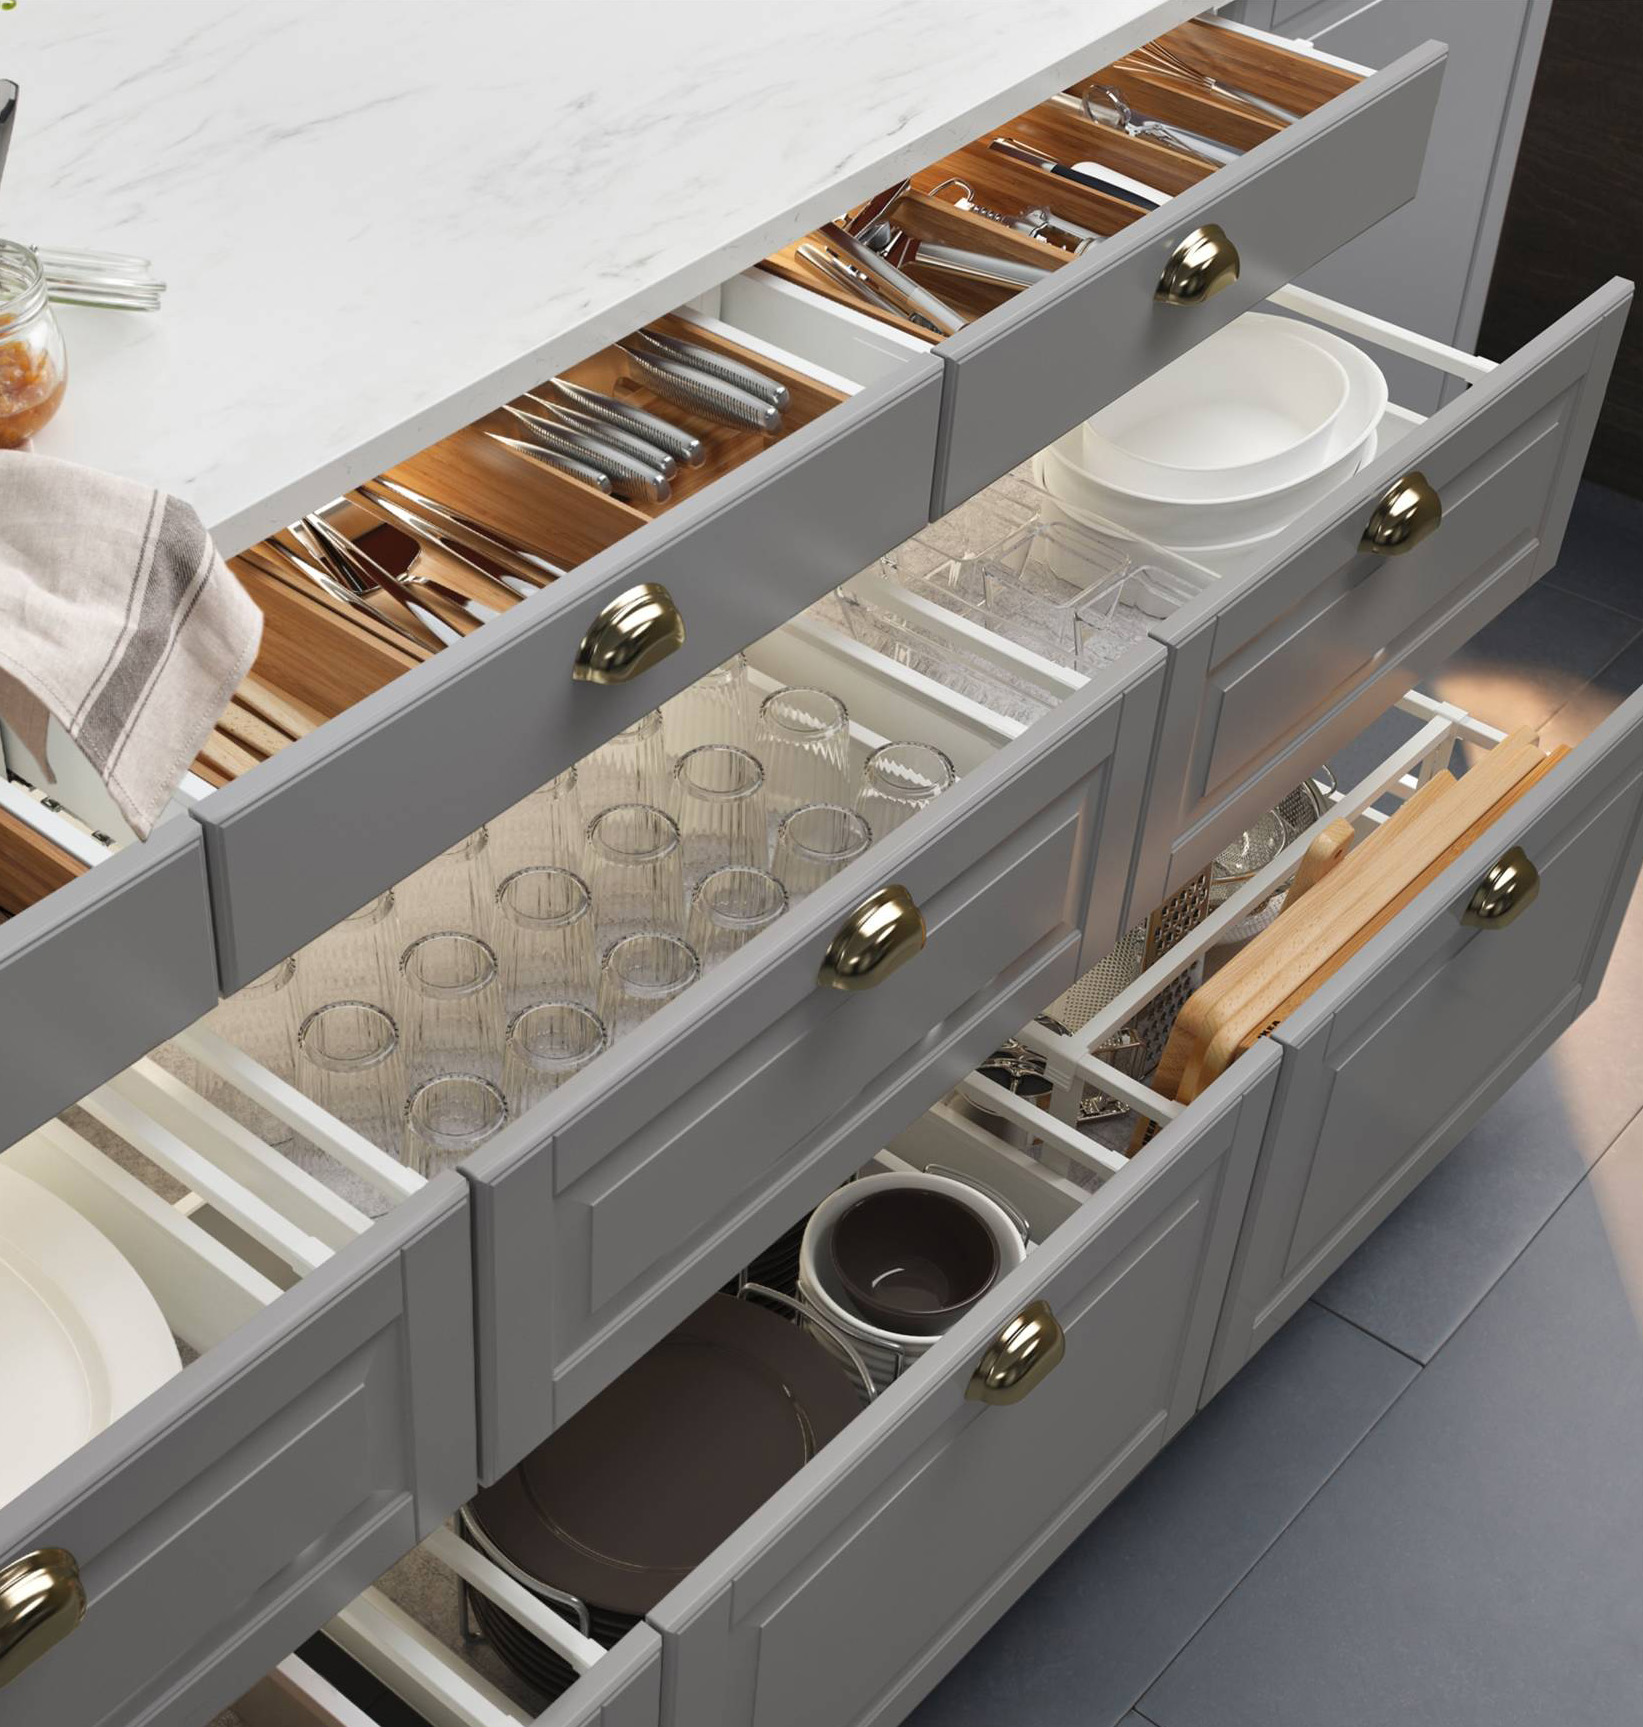 Why You Should Replace Kitchen Cabinets With Drawers | Kitchn